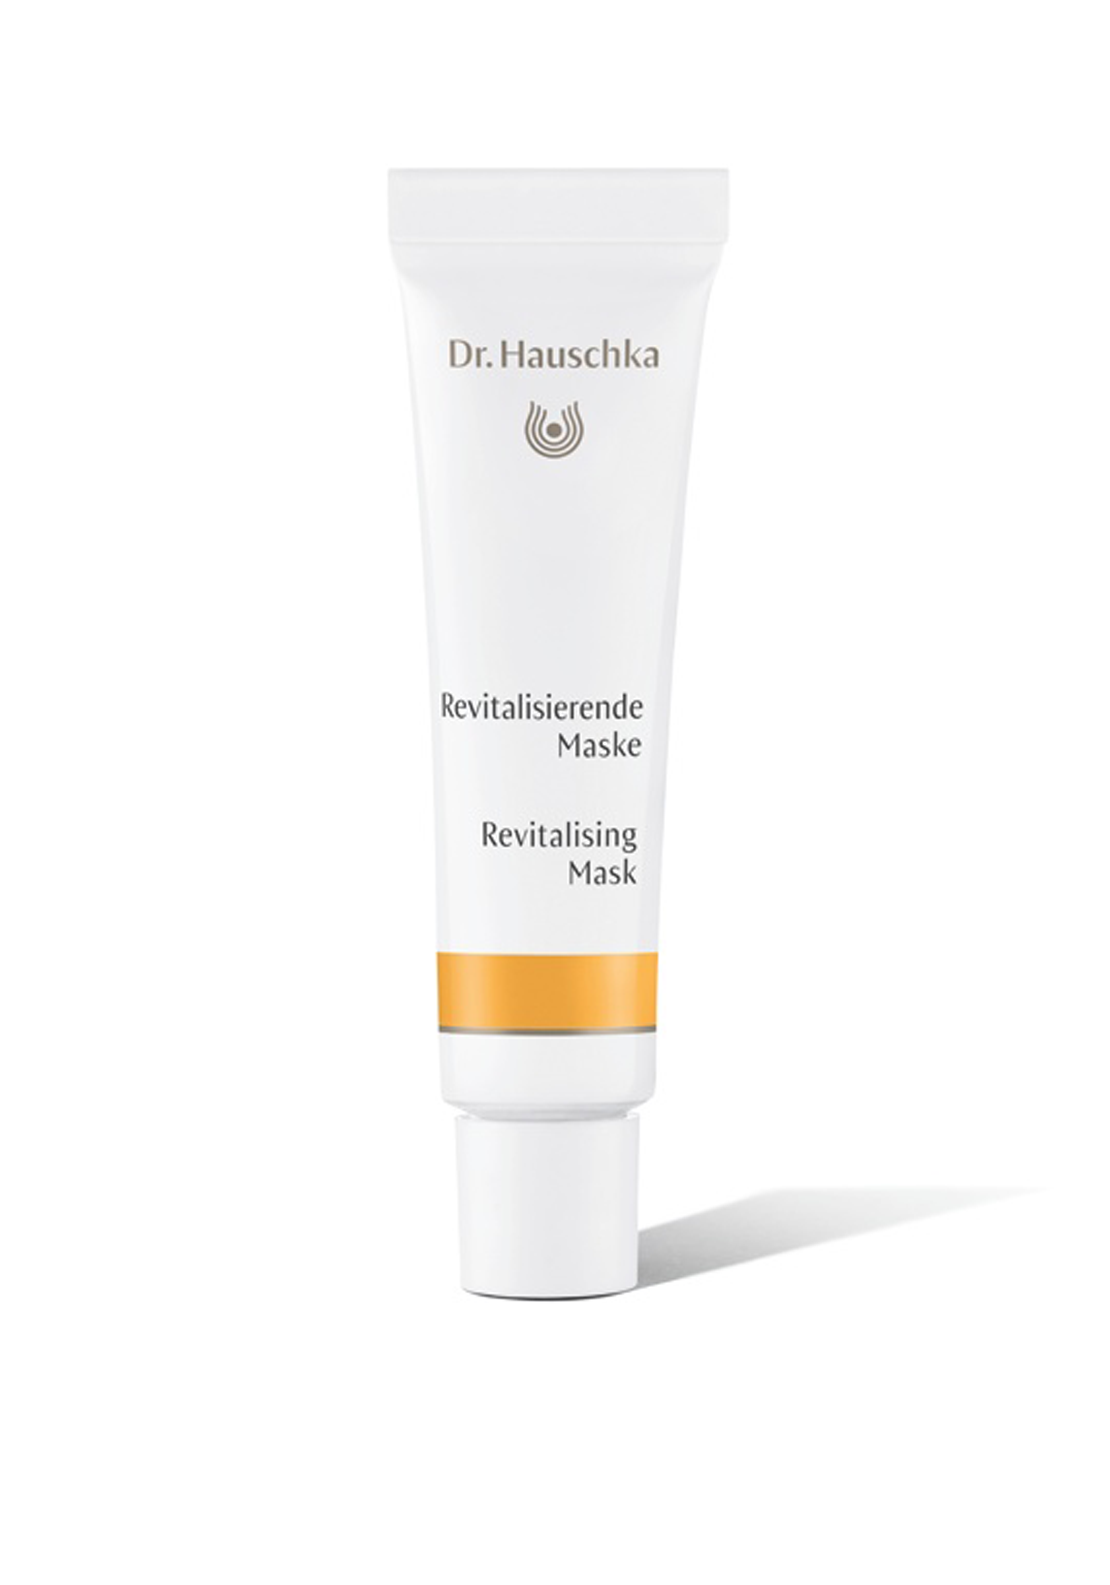 Dr. Hauschka Revitalising Mask, 30ml